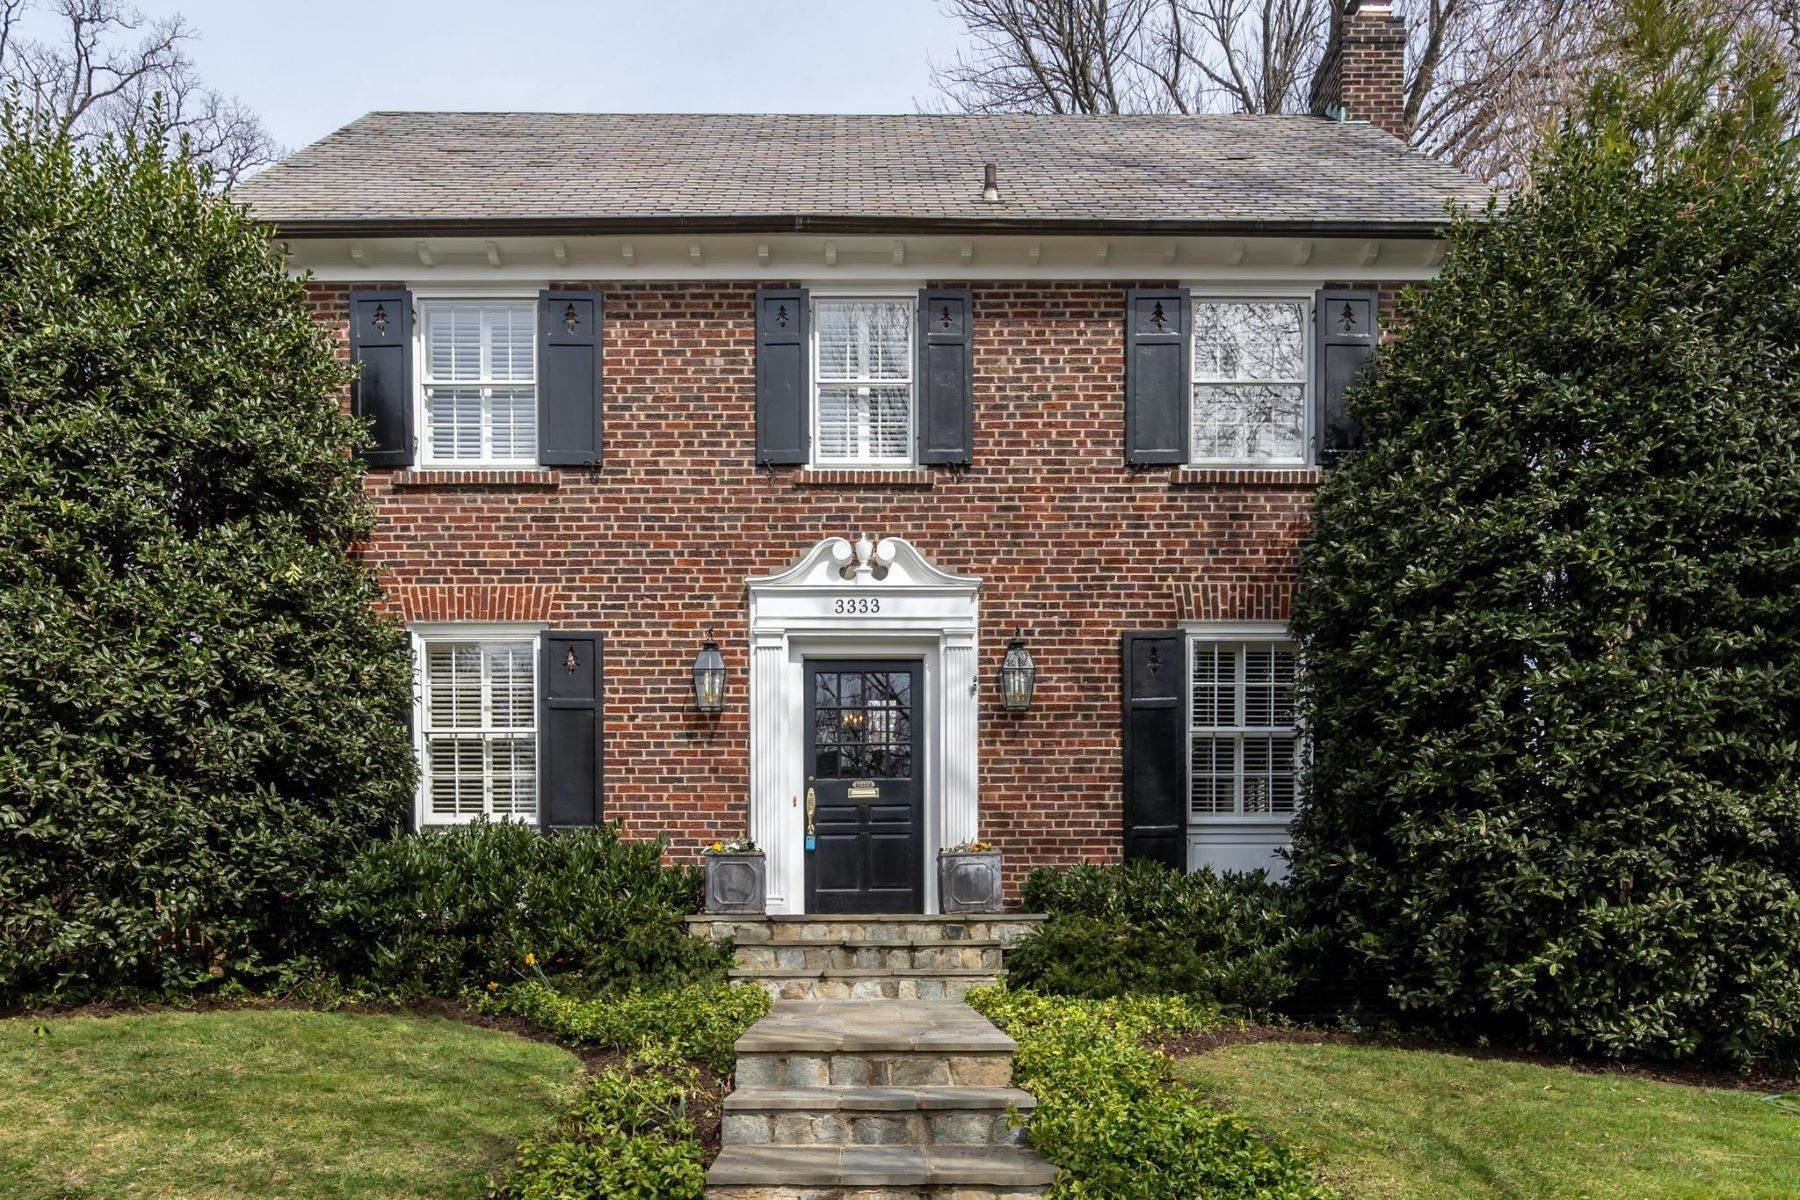 Single Family Homes for Sale at Chevy Chase, Washington, District Of Columbia, 20015 United States